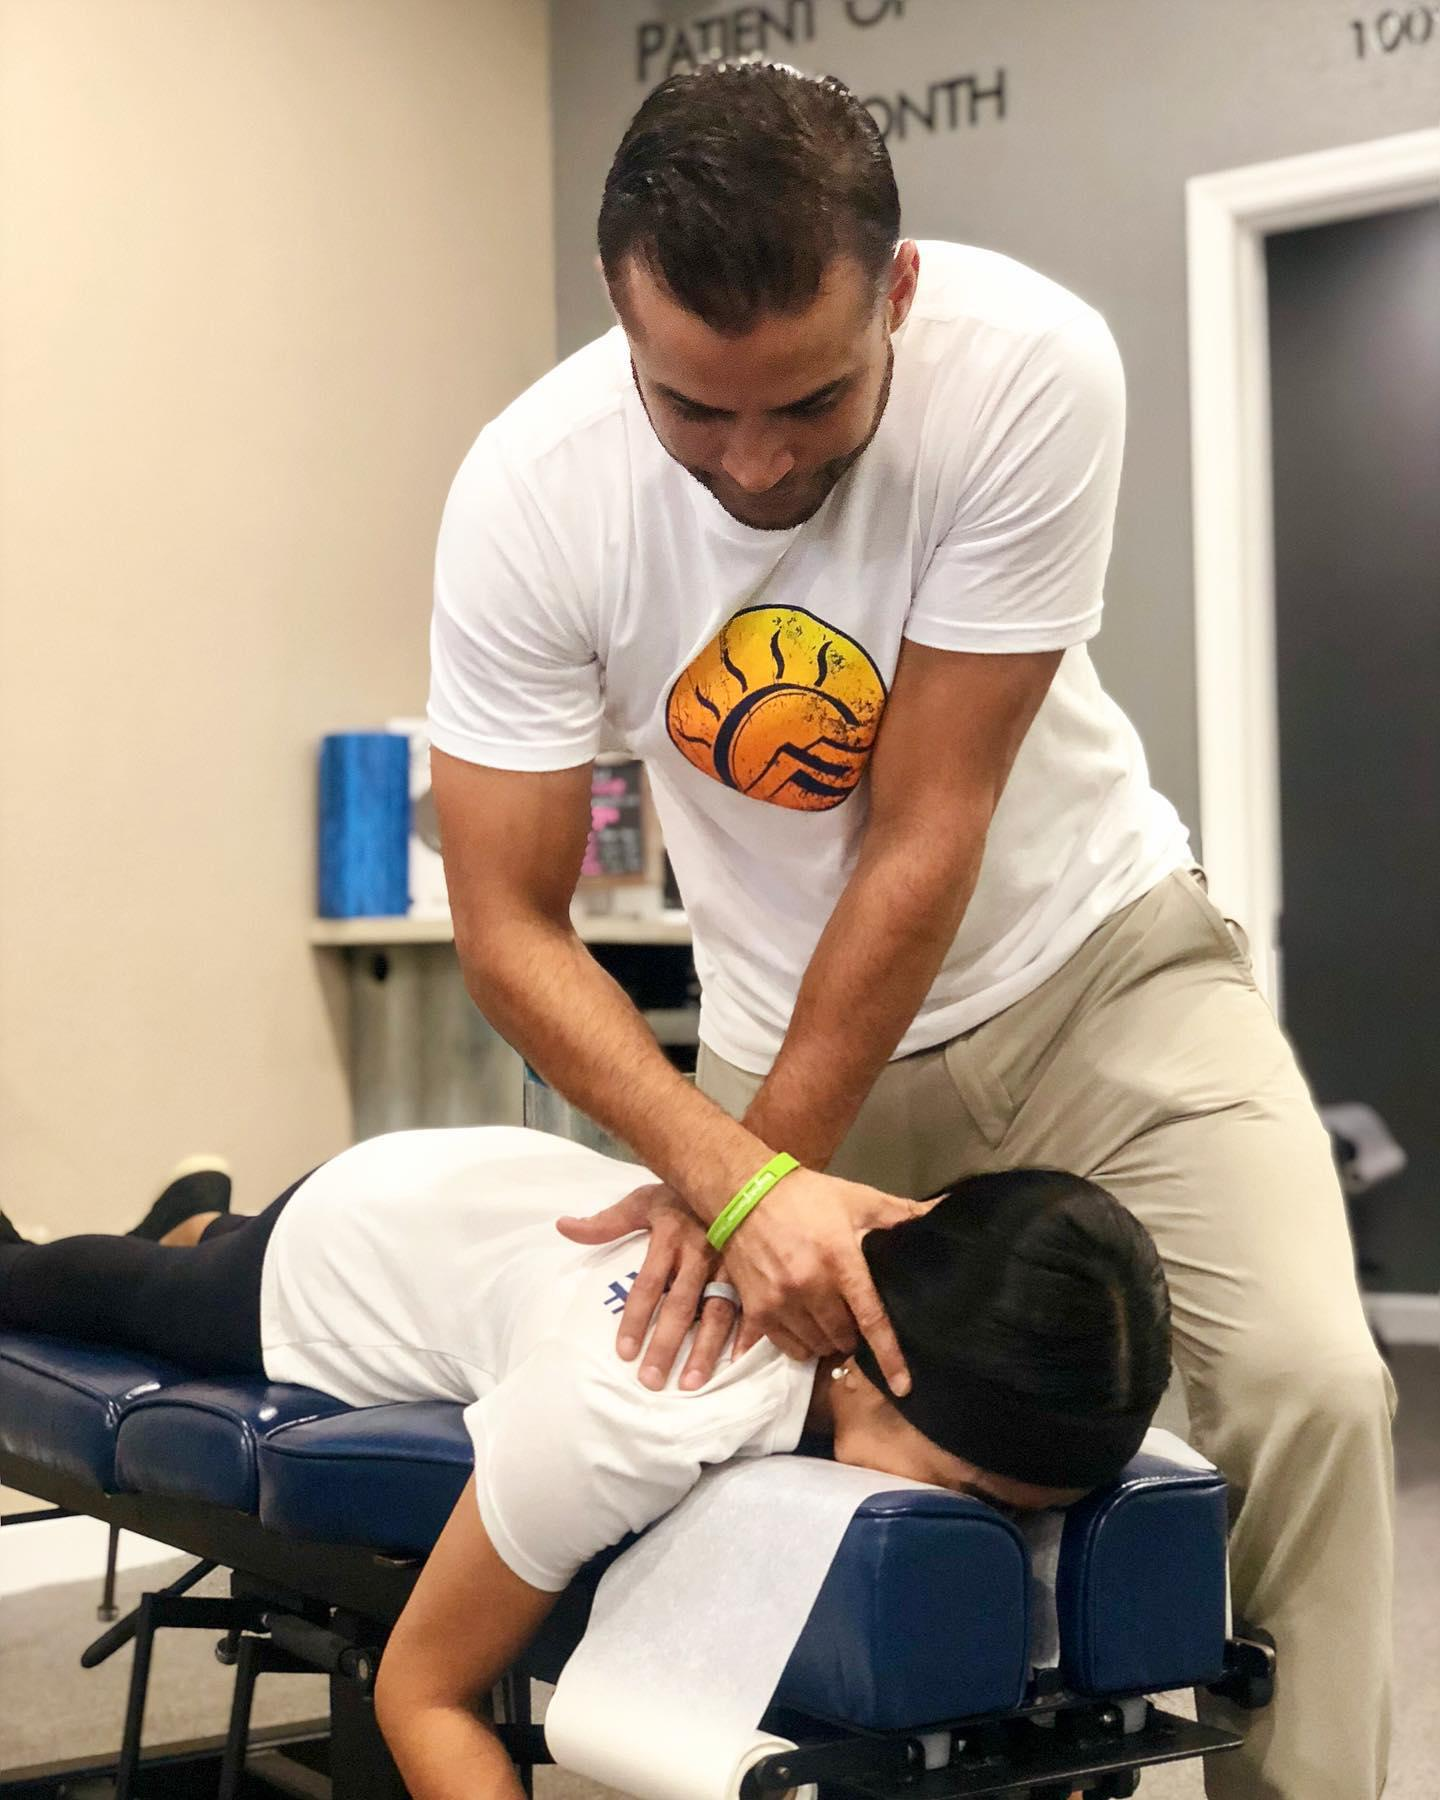 100% Chiropractic - Tampa